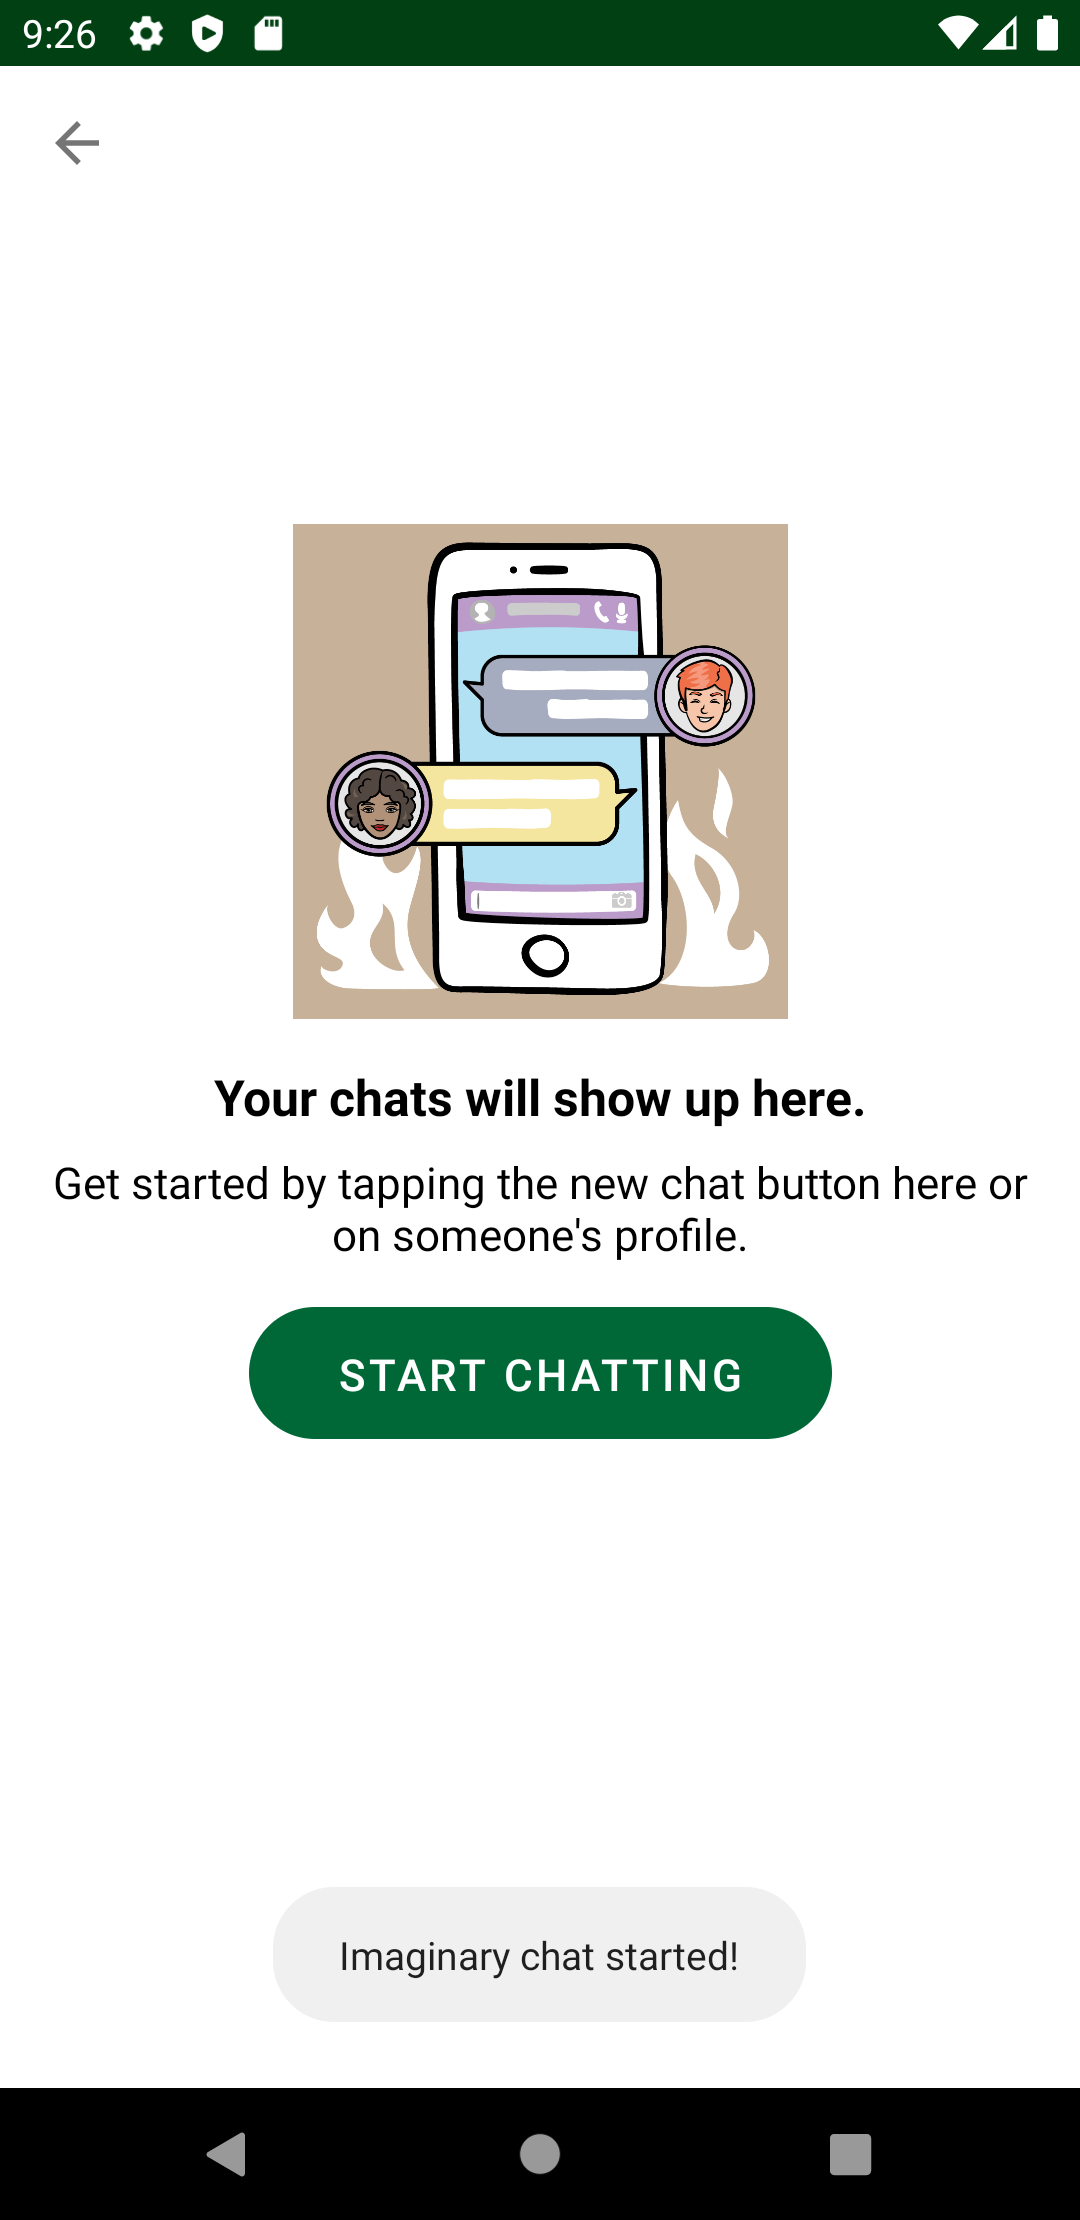 ComposeButton in Chat screen